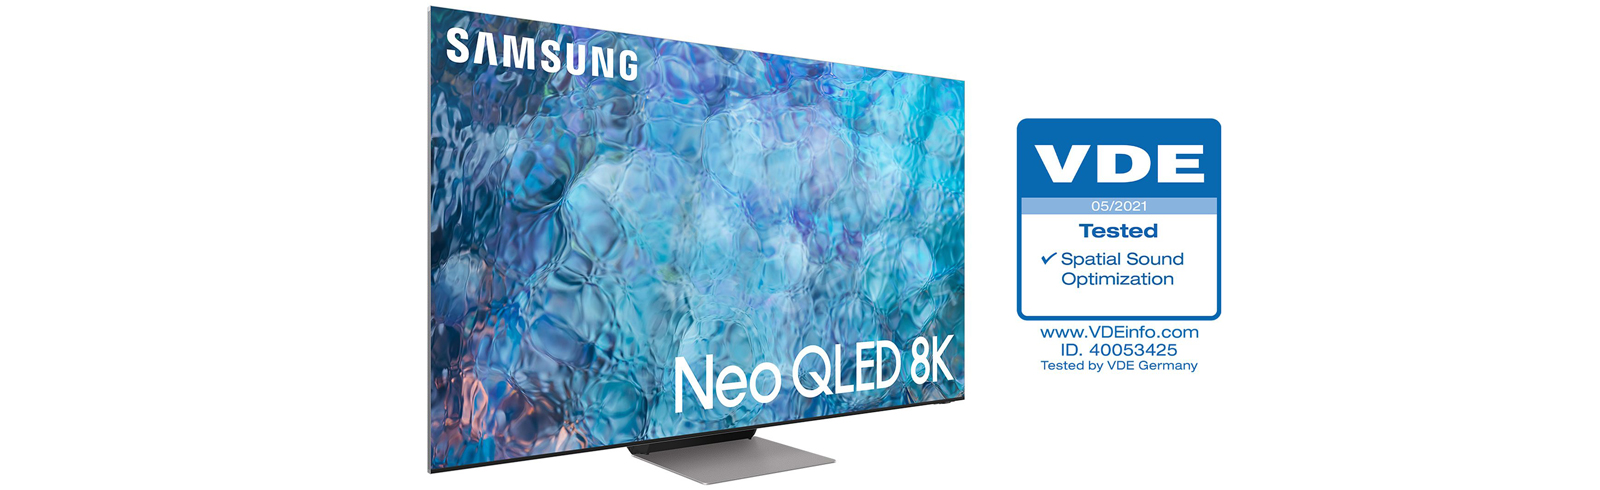 Samsung Neo QLED TVs receive Spatial Sound Optimization Certification from VDE